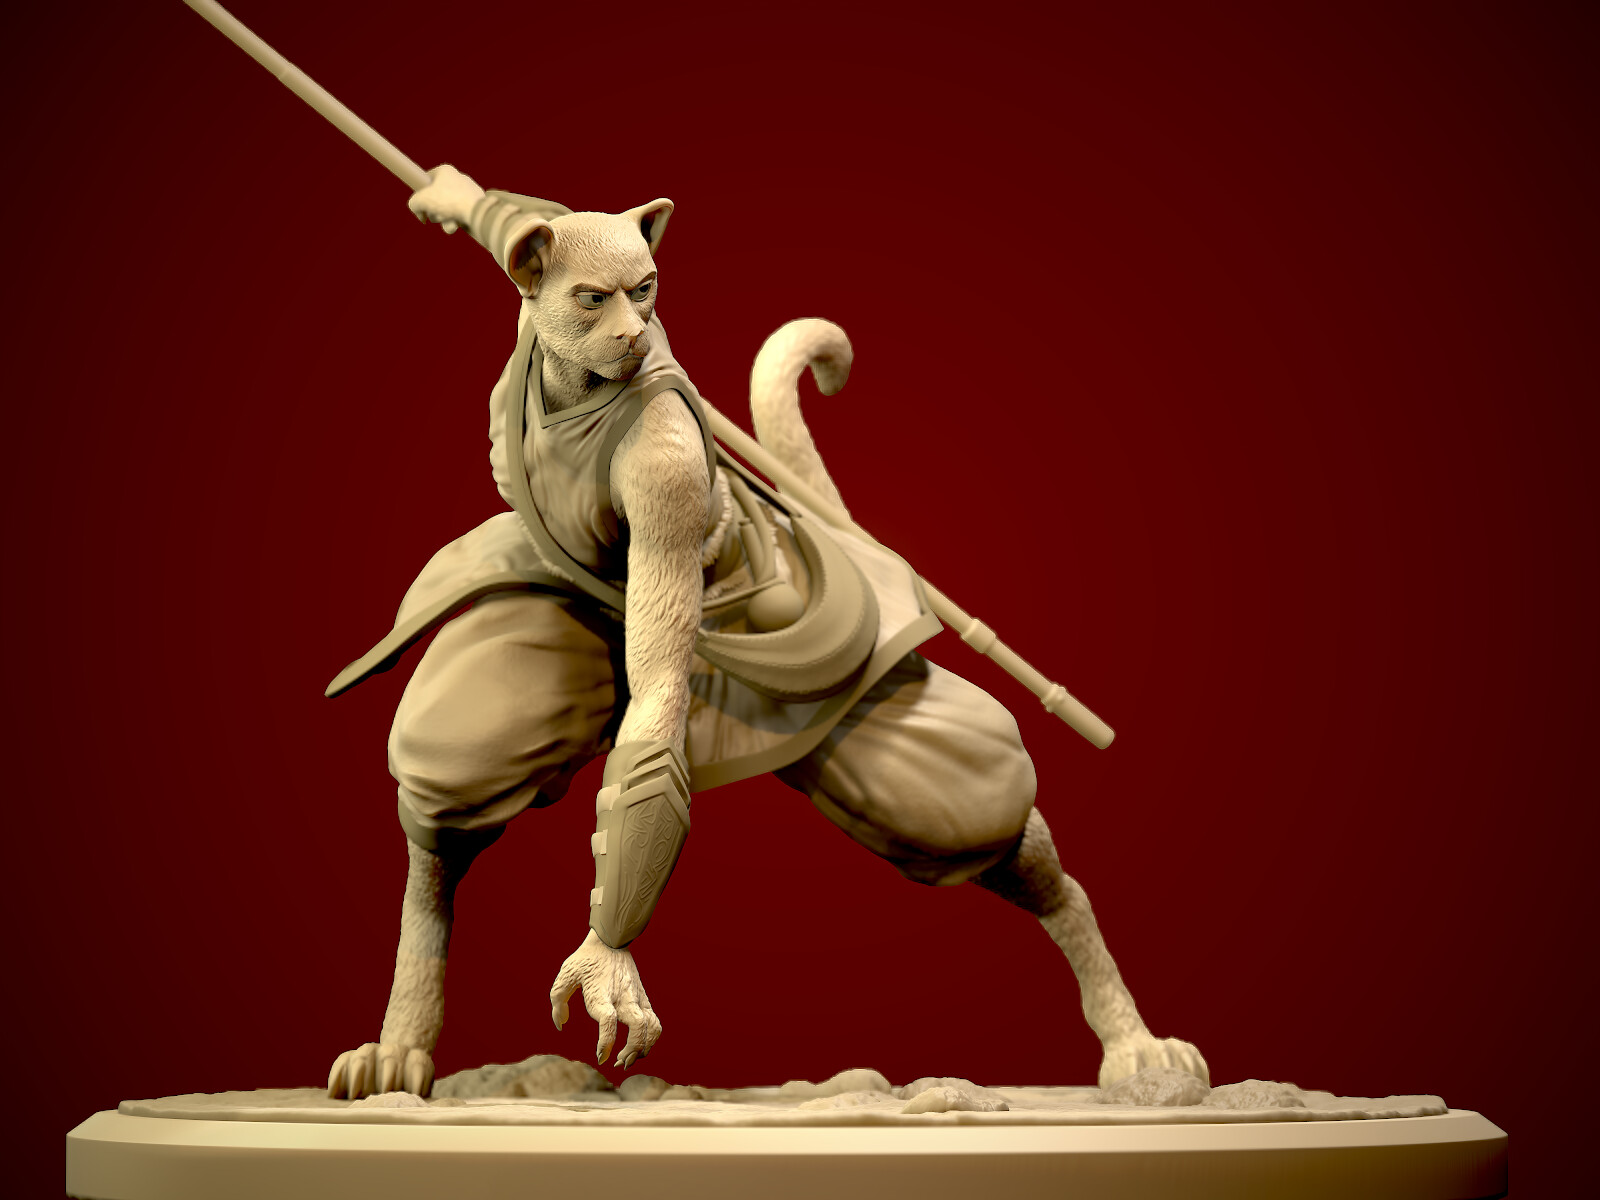 Tom Paterson Cloud D D Tabaxi Sculpt The tabaxi's free skills help to further pad the bard's already dexterity is a good basis for a monk, and the monk's speed increase applies to the tabaxi's climb speed, making you an excellent climber. tom paterson cloud d d tabaxi sculpt